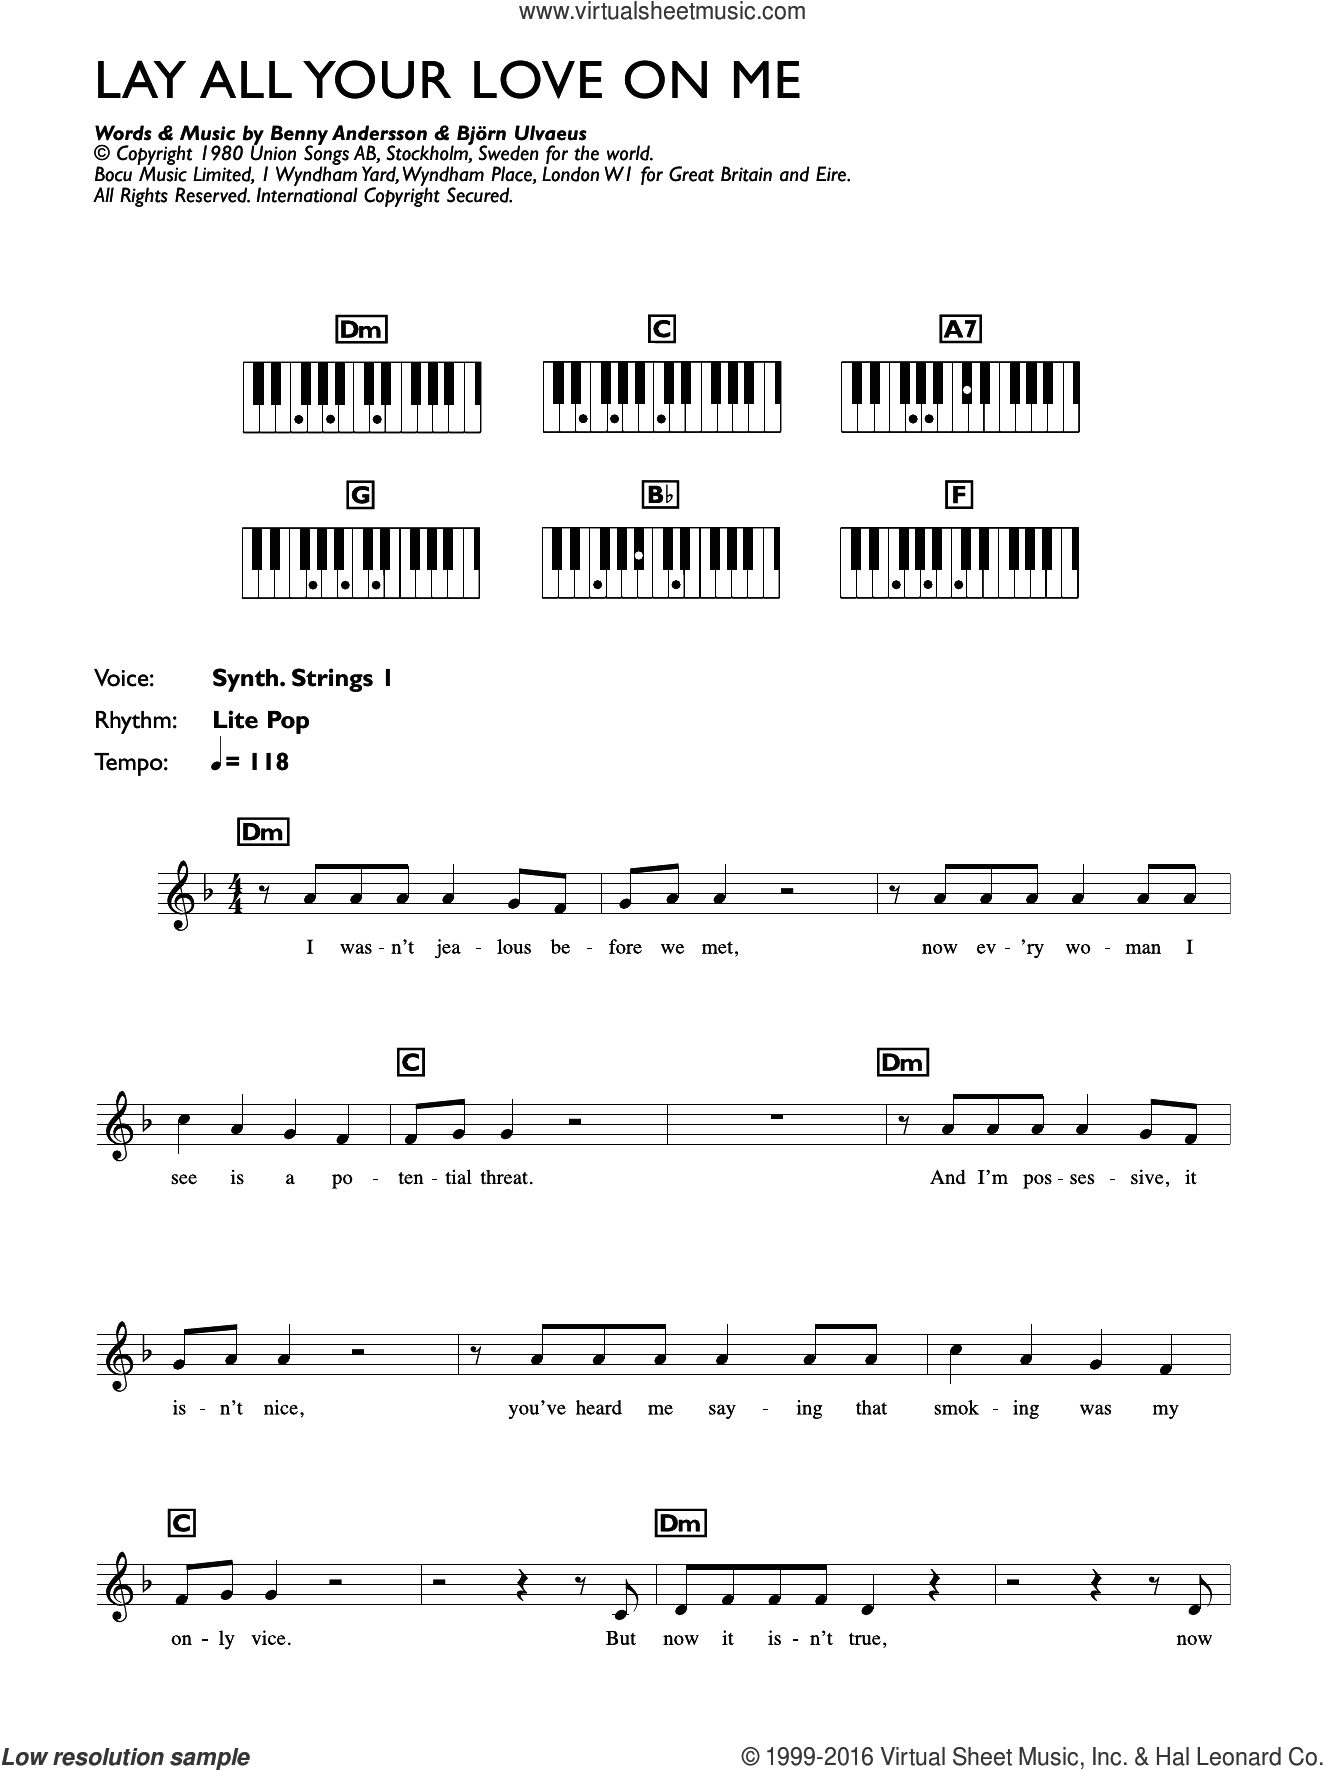 Lay All Your Love On Me sheet music for piano solo (chords, lyrics, melody) by Bjorn Ulvaeus